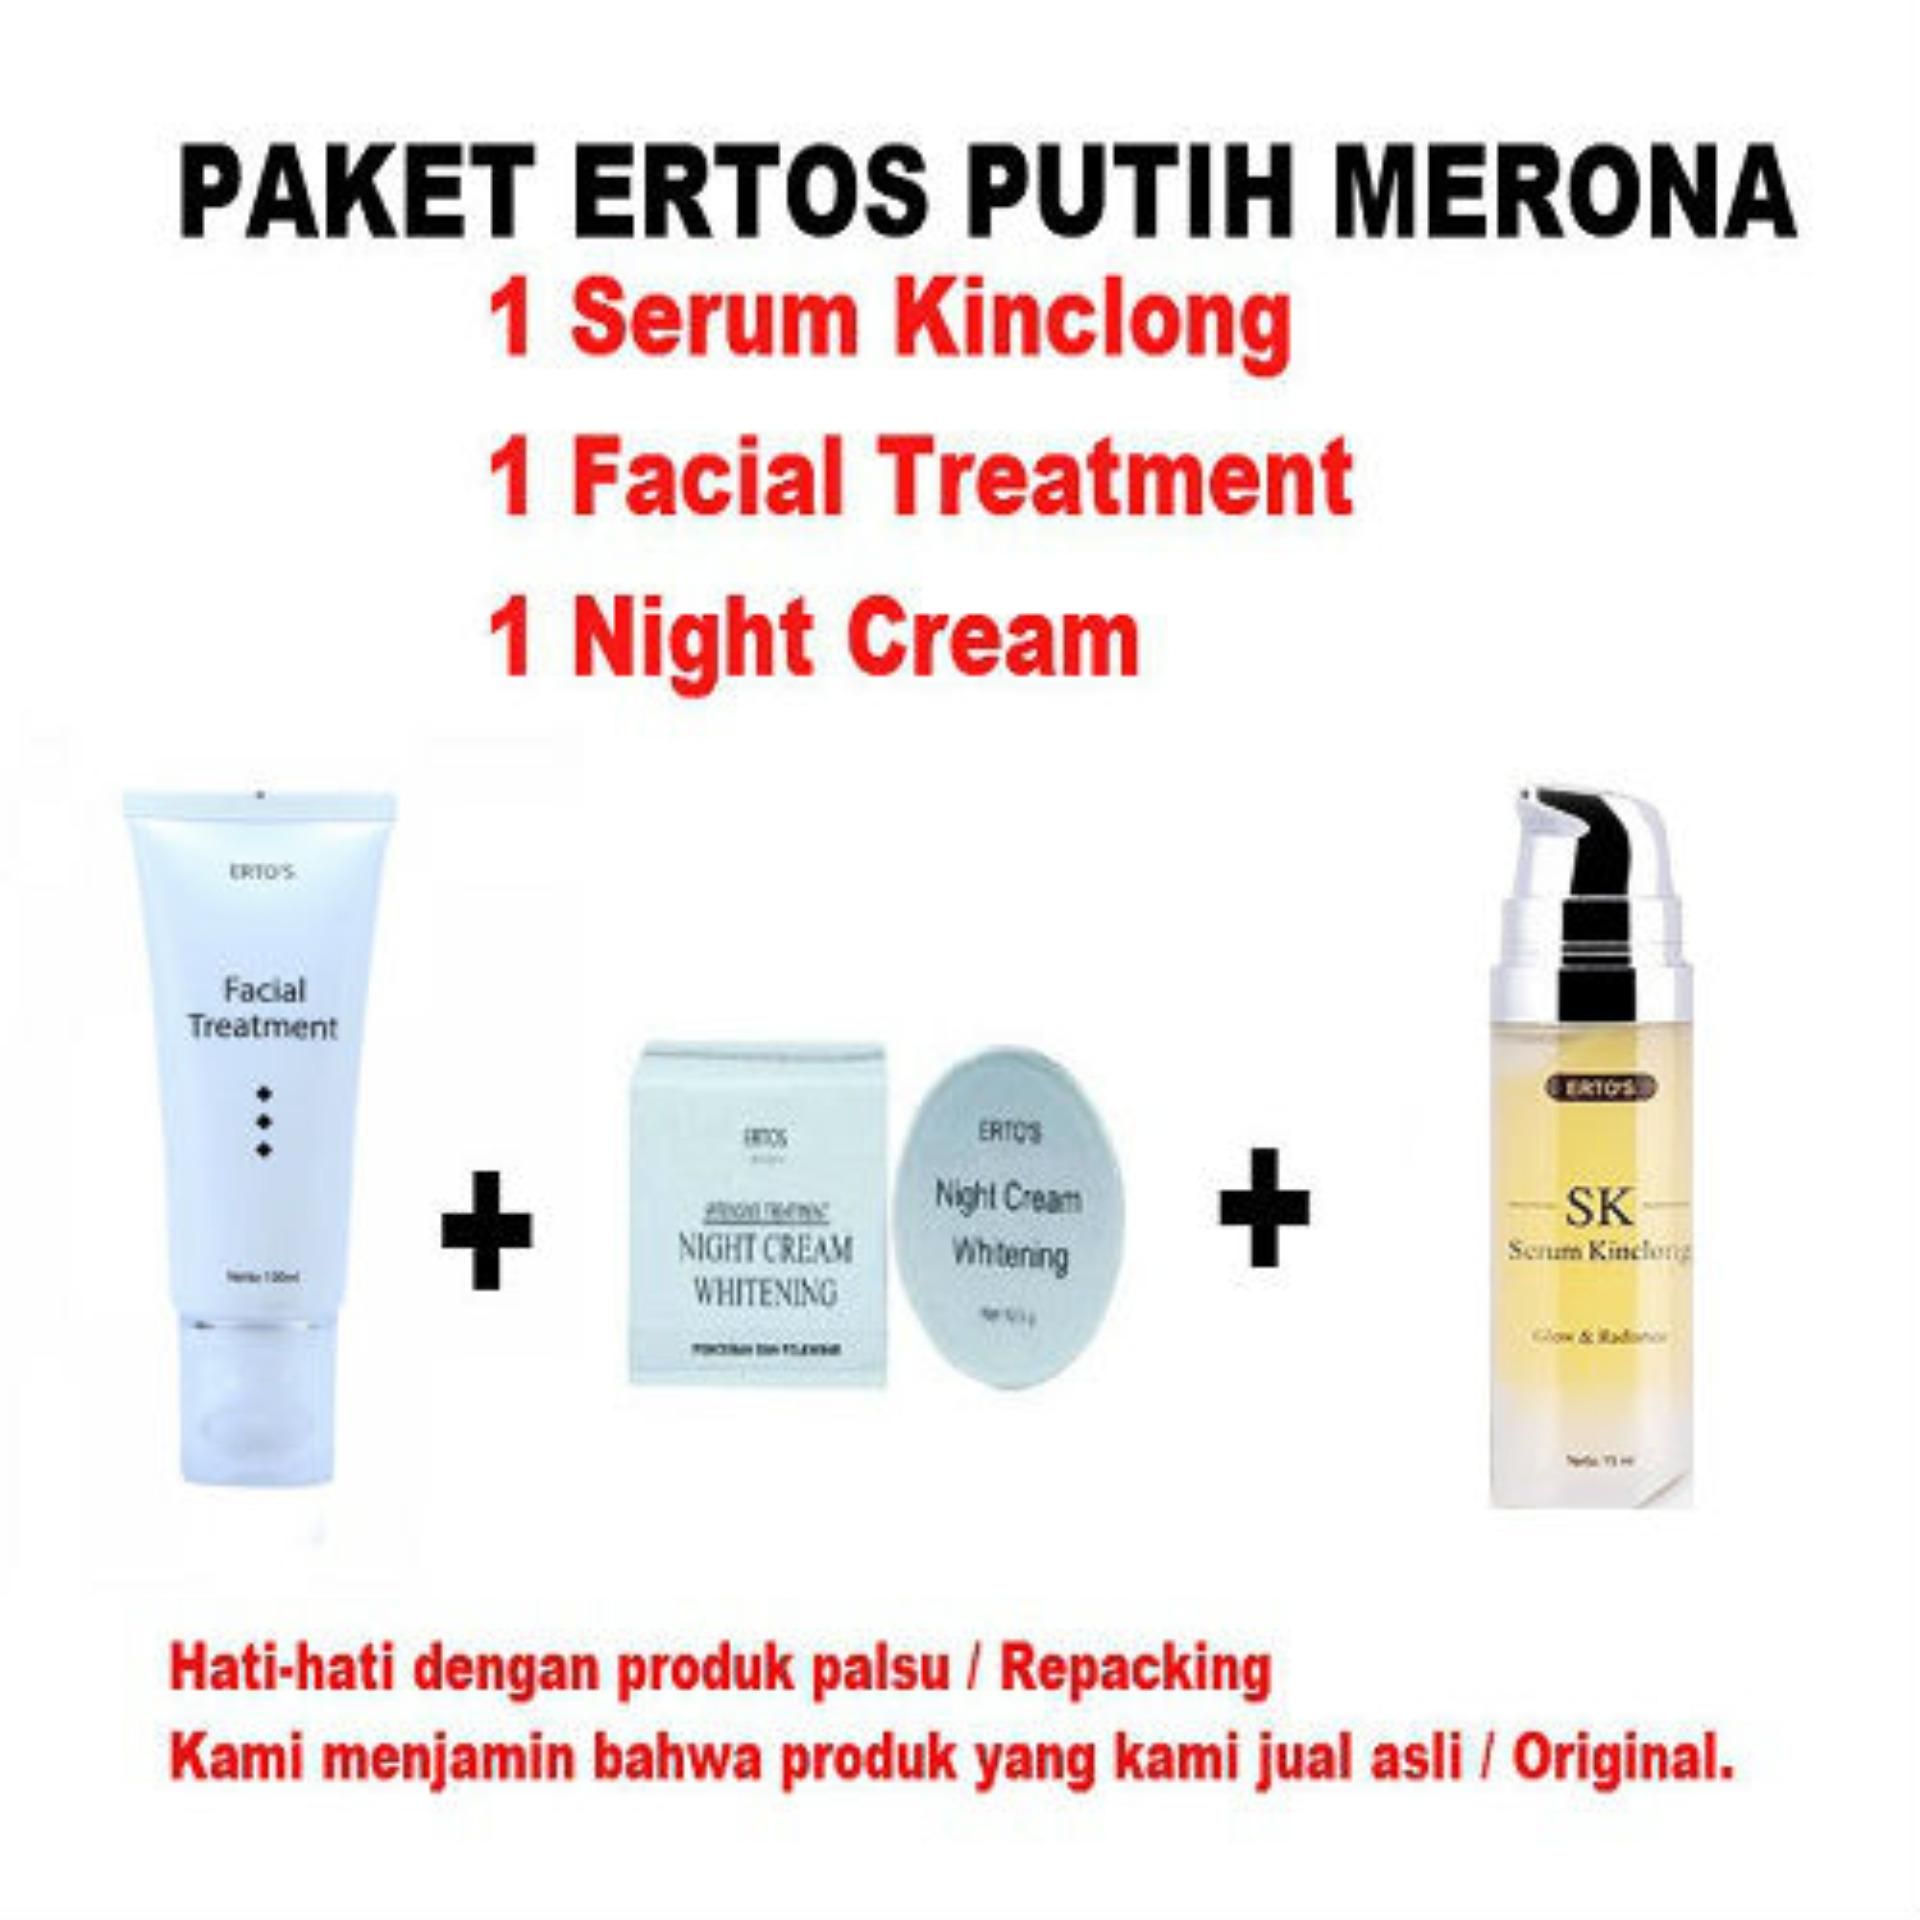 Review Tentang Ertos Kinclong Putih Merona 3 In 1 Di Jamin Asli